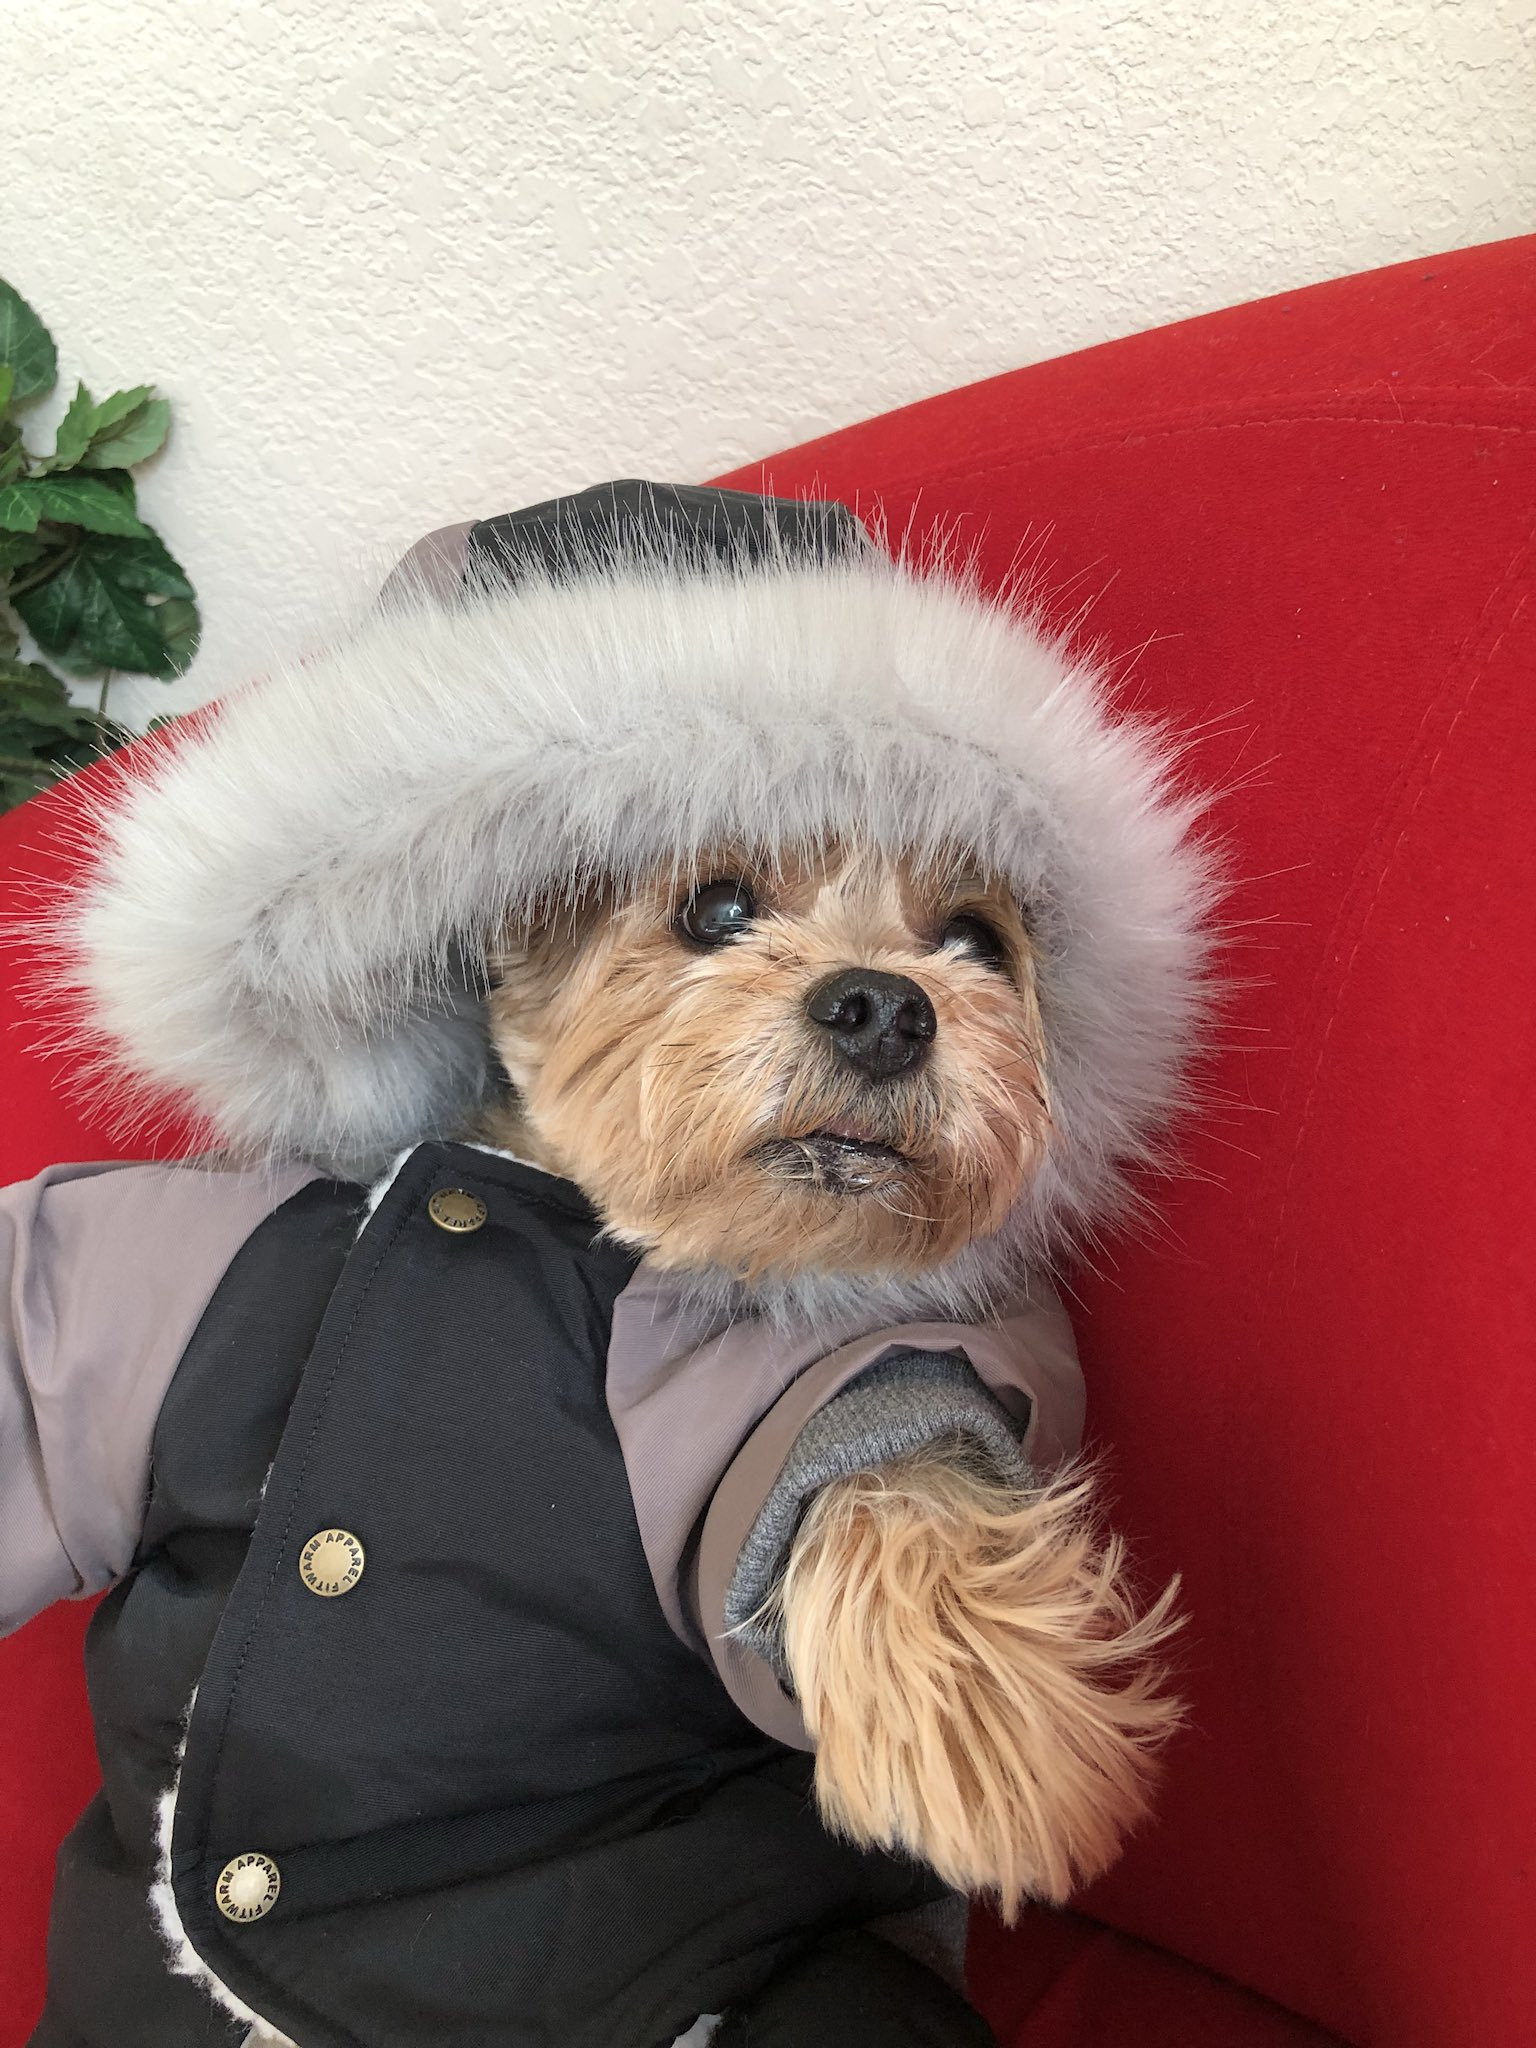 #ItsSoCold my dog in the house with his coat on!! Looking at me like nah I'll hold my pee today������‍♀️�� https://t.co/Idndg4Zk7k